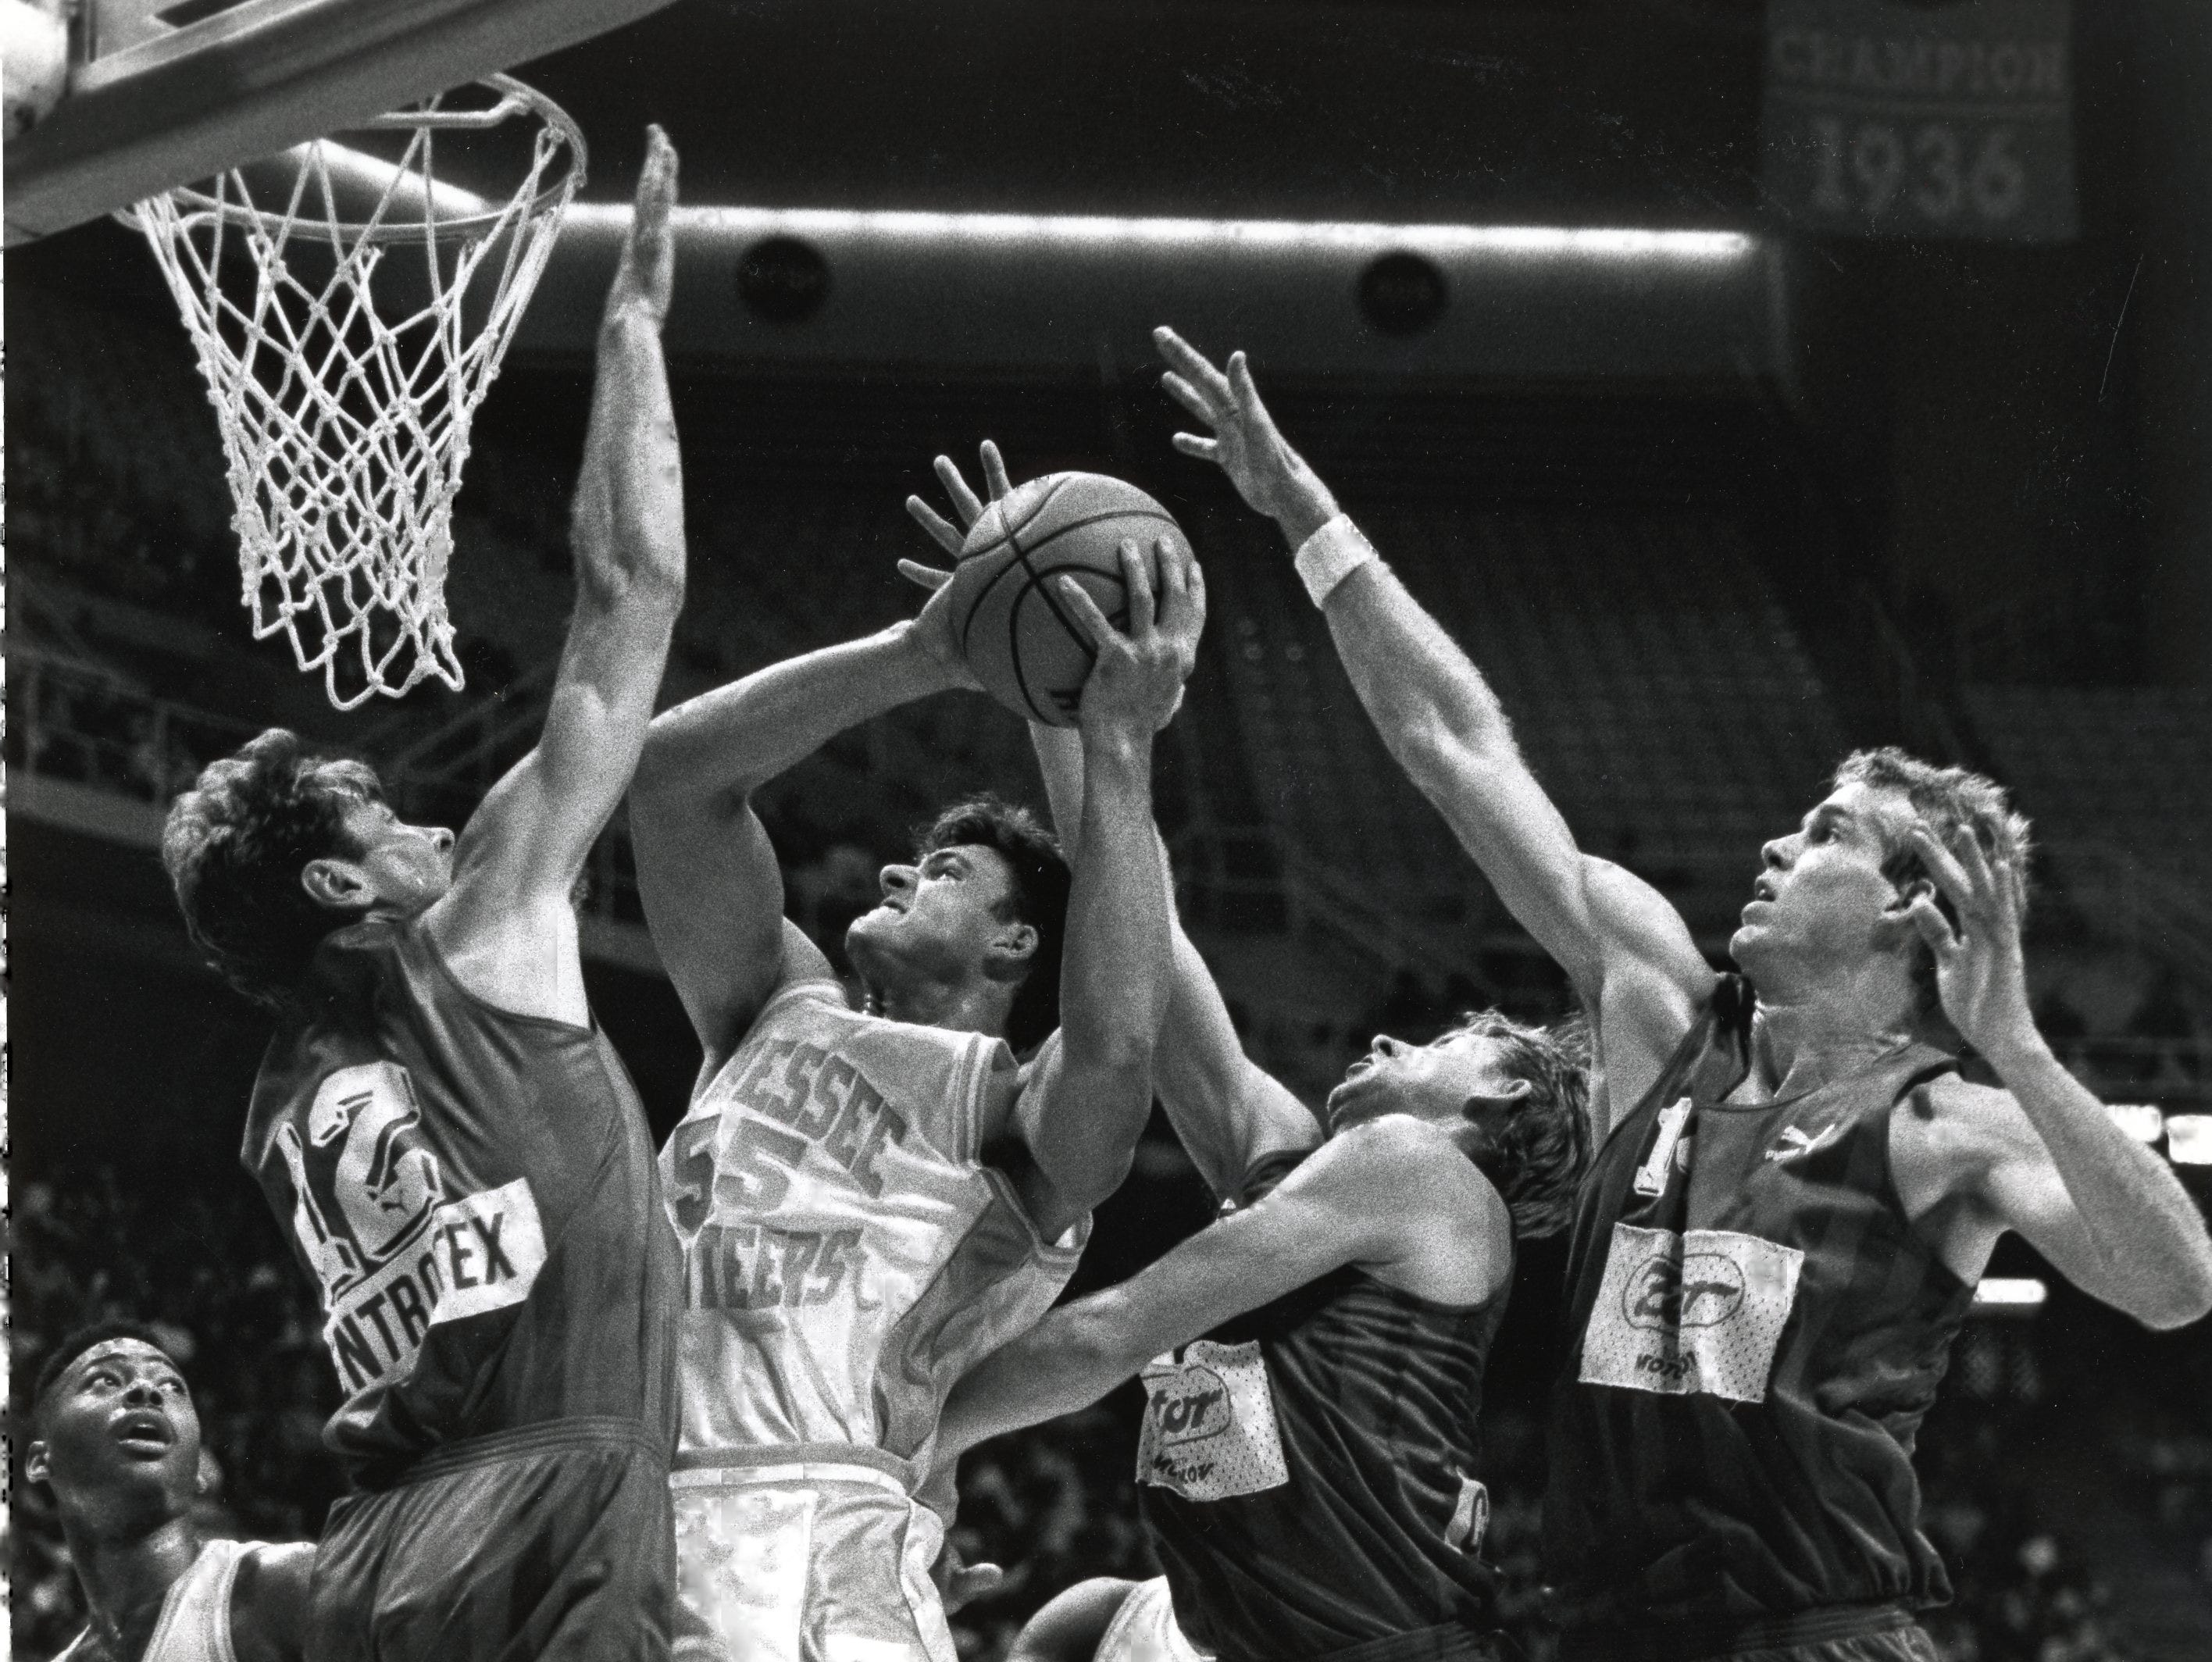 Tennessee's Gannon Goodson (55) goes to the basket against Czechslovakia's Karel Forejt (12) and two other players in November 1991.